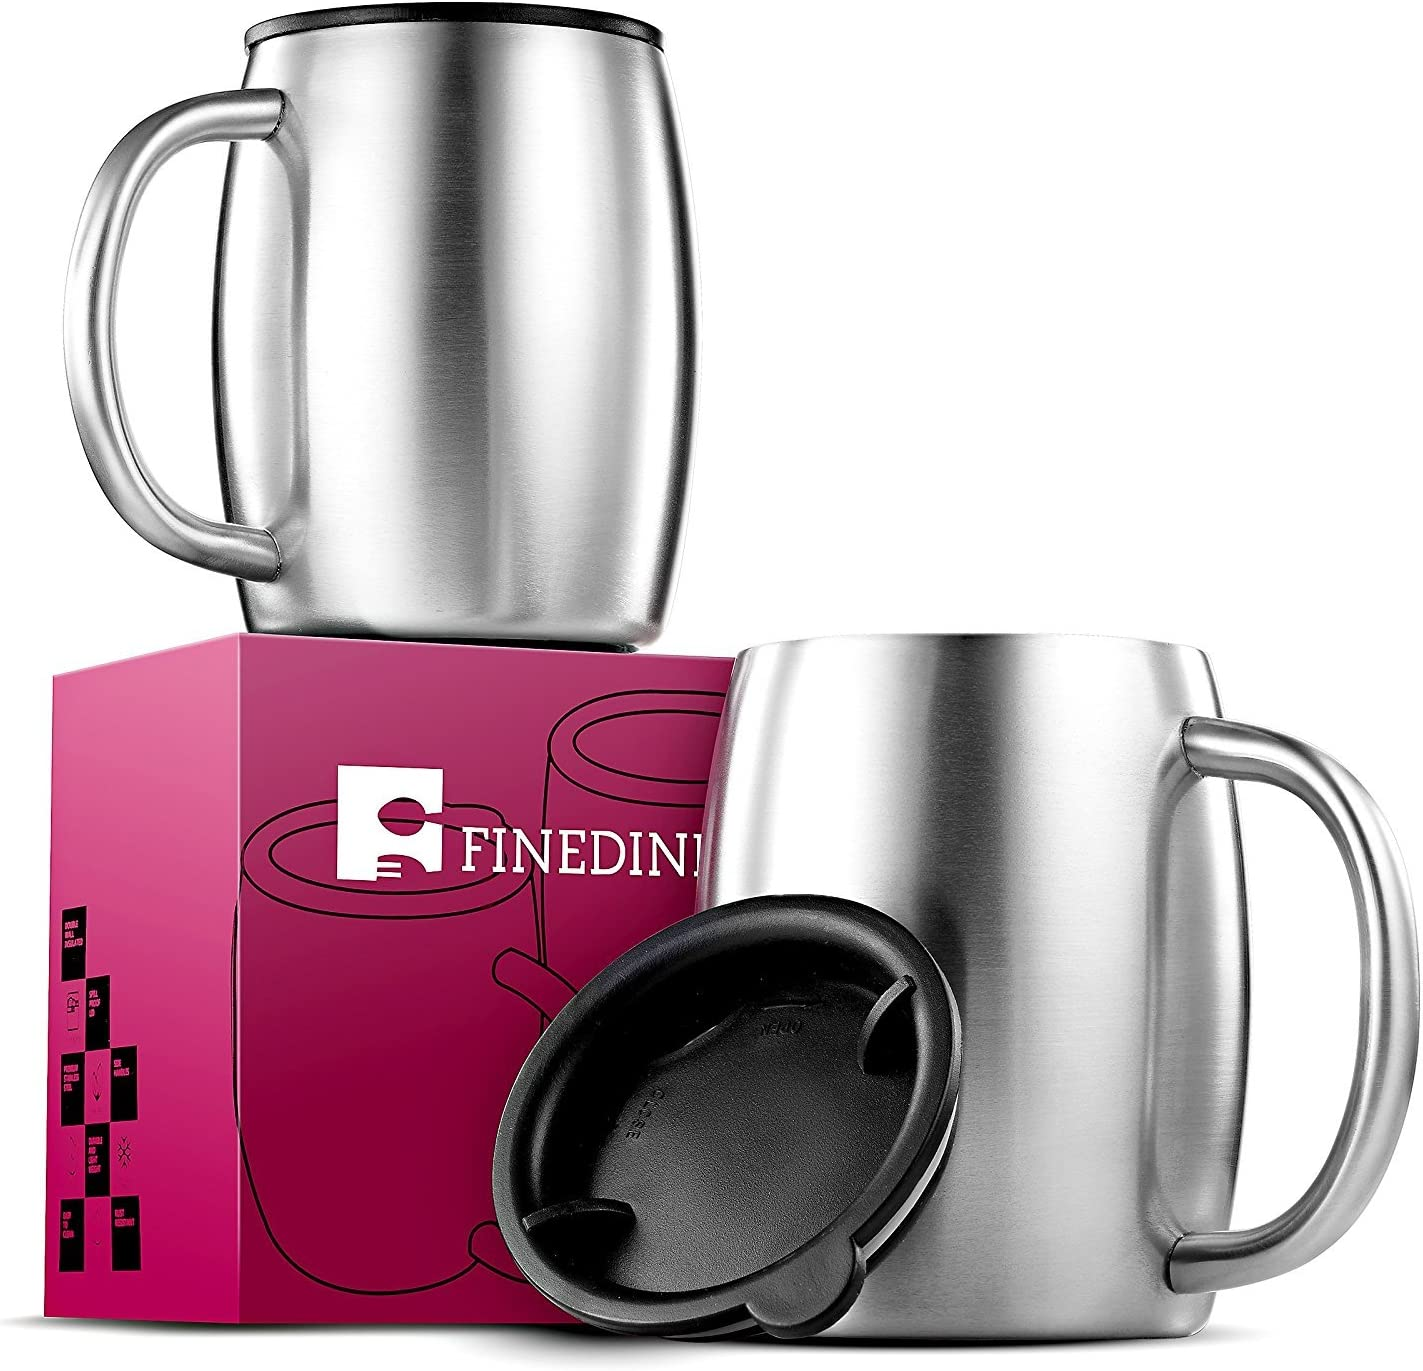 Insulated Stainless Steel Coffee Cups (Set Of 2) BPA Free Spill Proof Lid Double Wall Camping Travel Mugs With Handle Tough & Shatterproof Coffee &